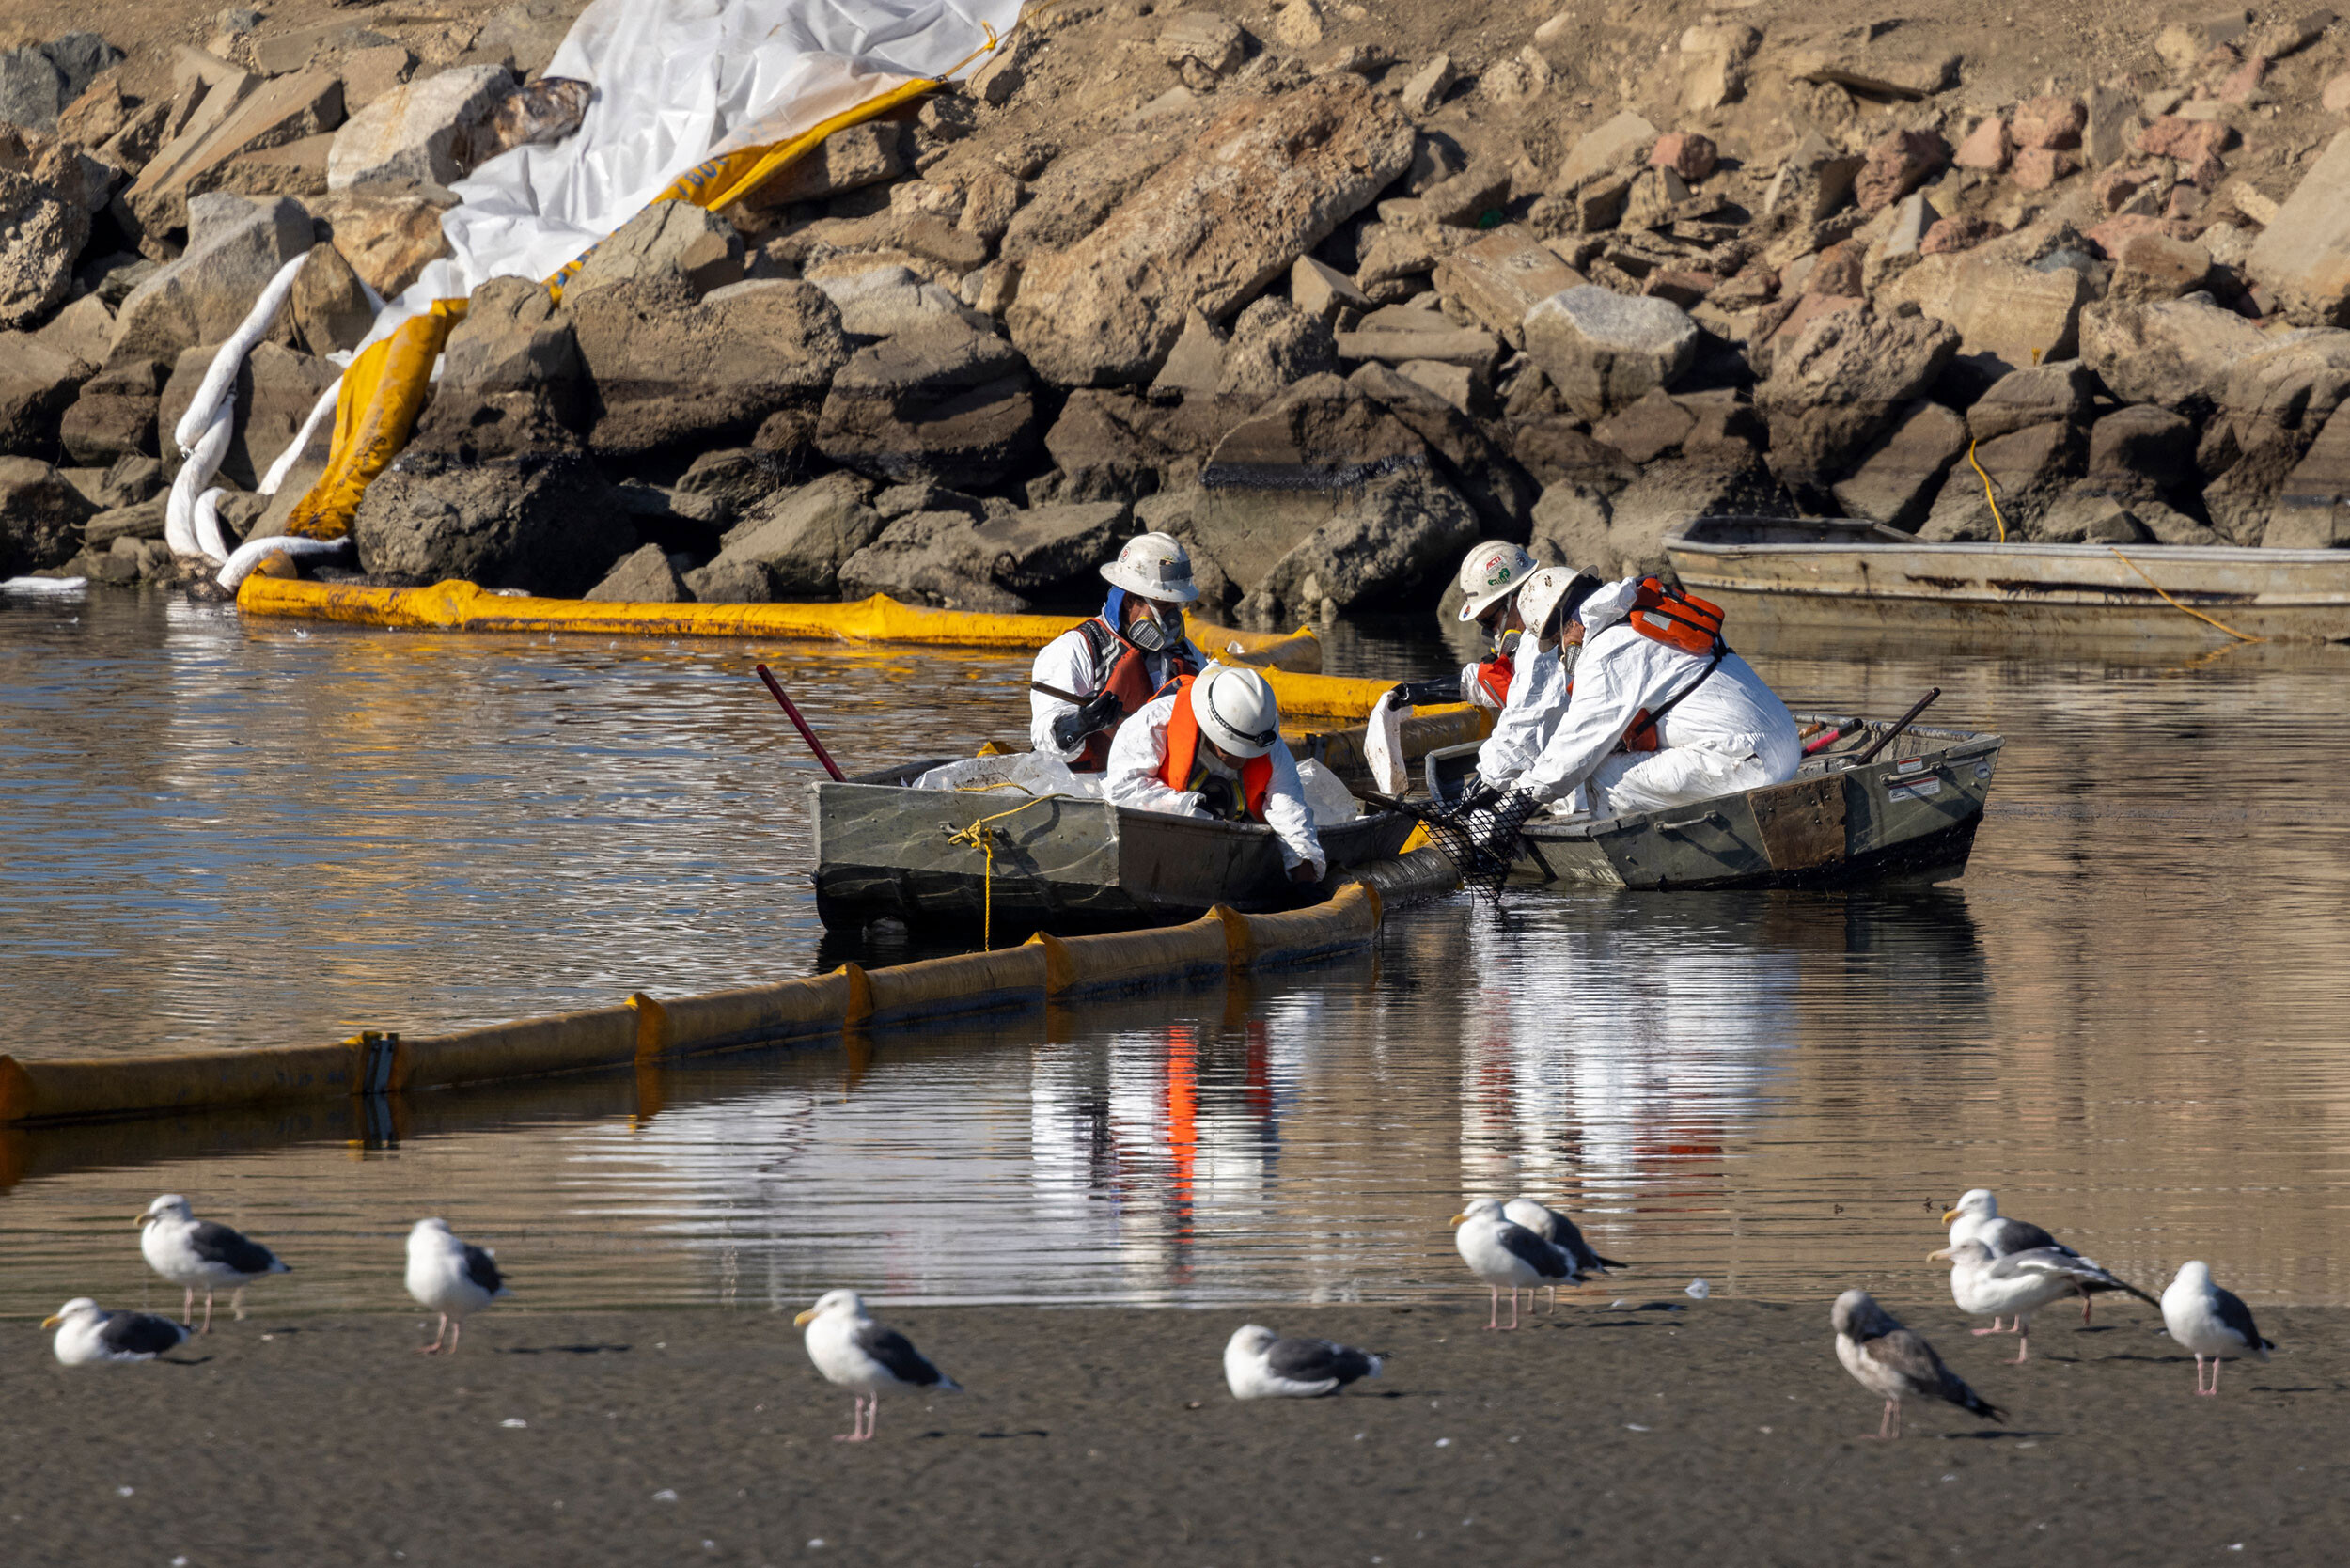 The California oil spill is endangering wildlife. Here's how authorities are trying to clean it up